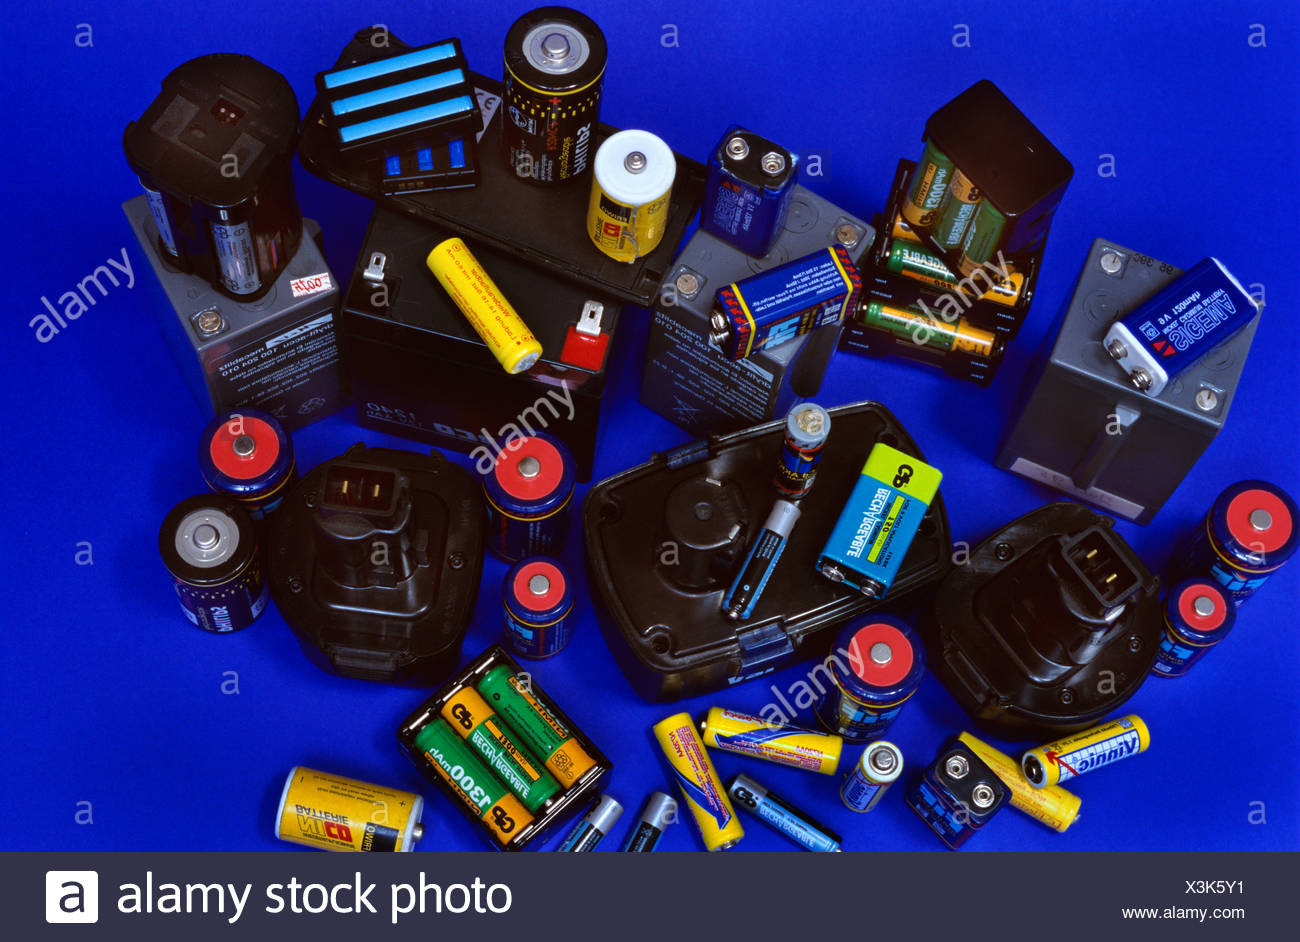 Old rechargeable batteries against a blue backdrop Stock Photo